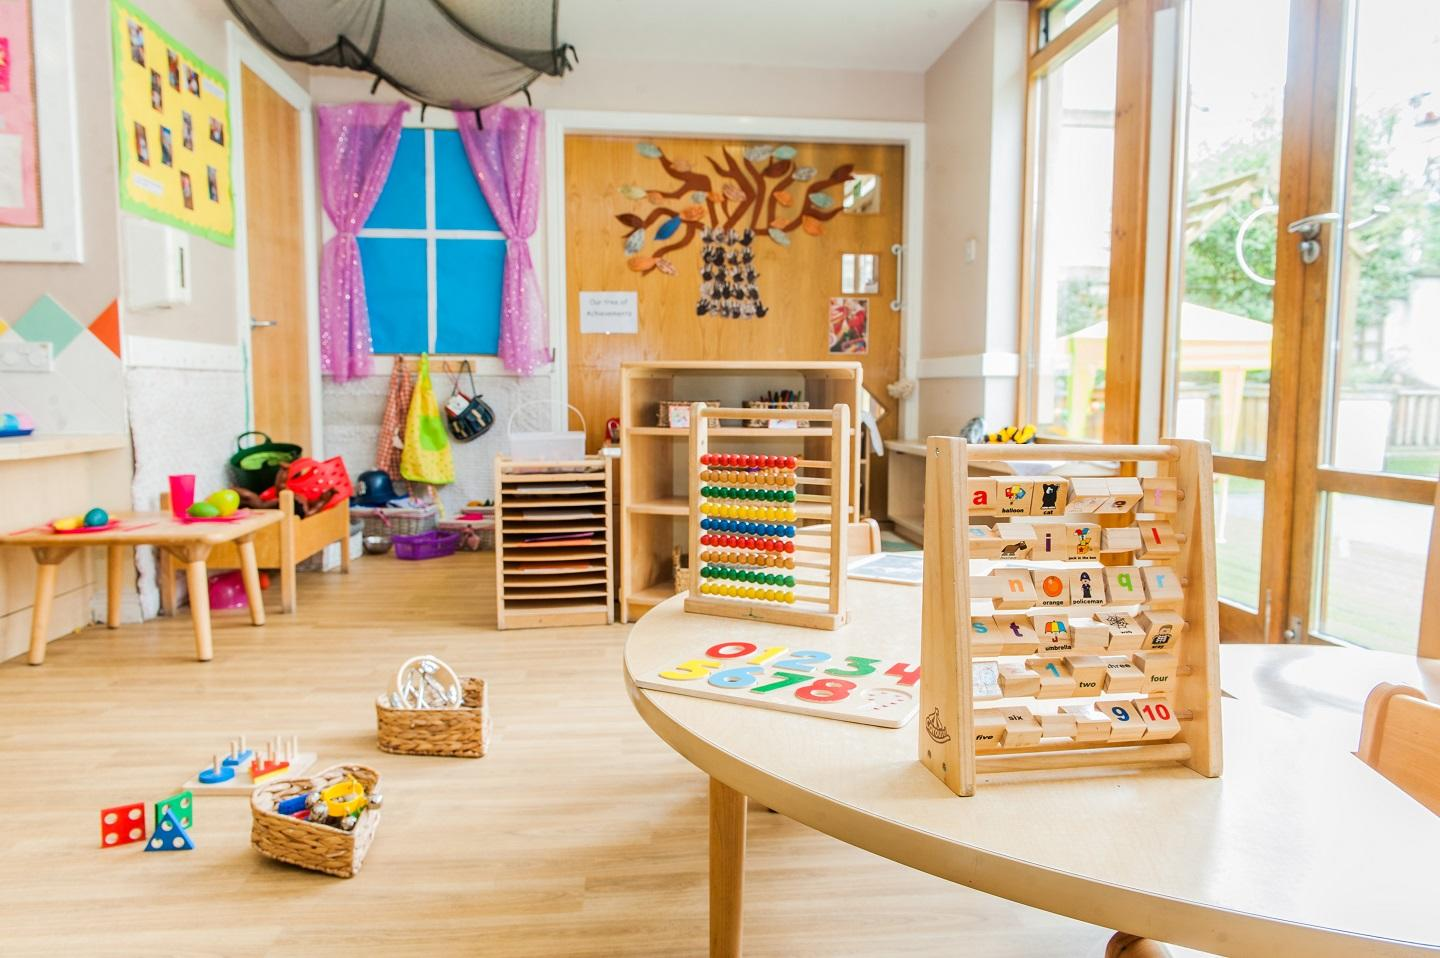 Bright Horizons Annandale Early Learning and Childcare